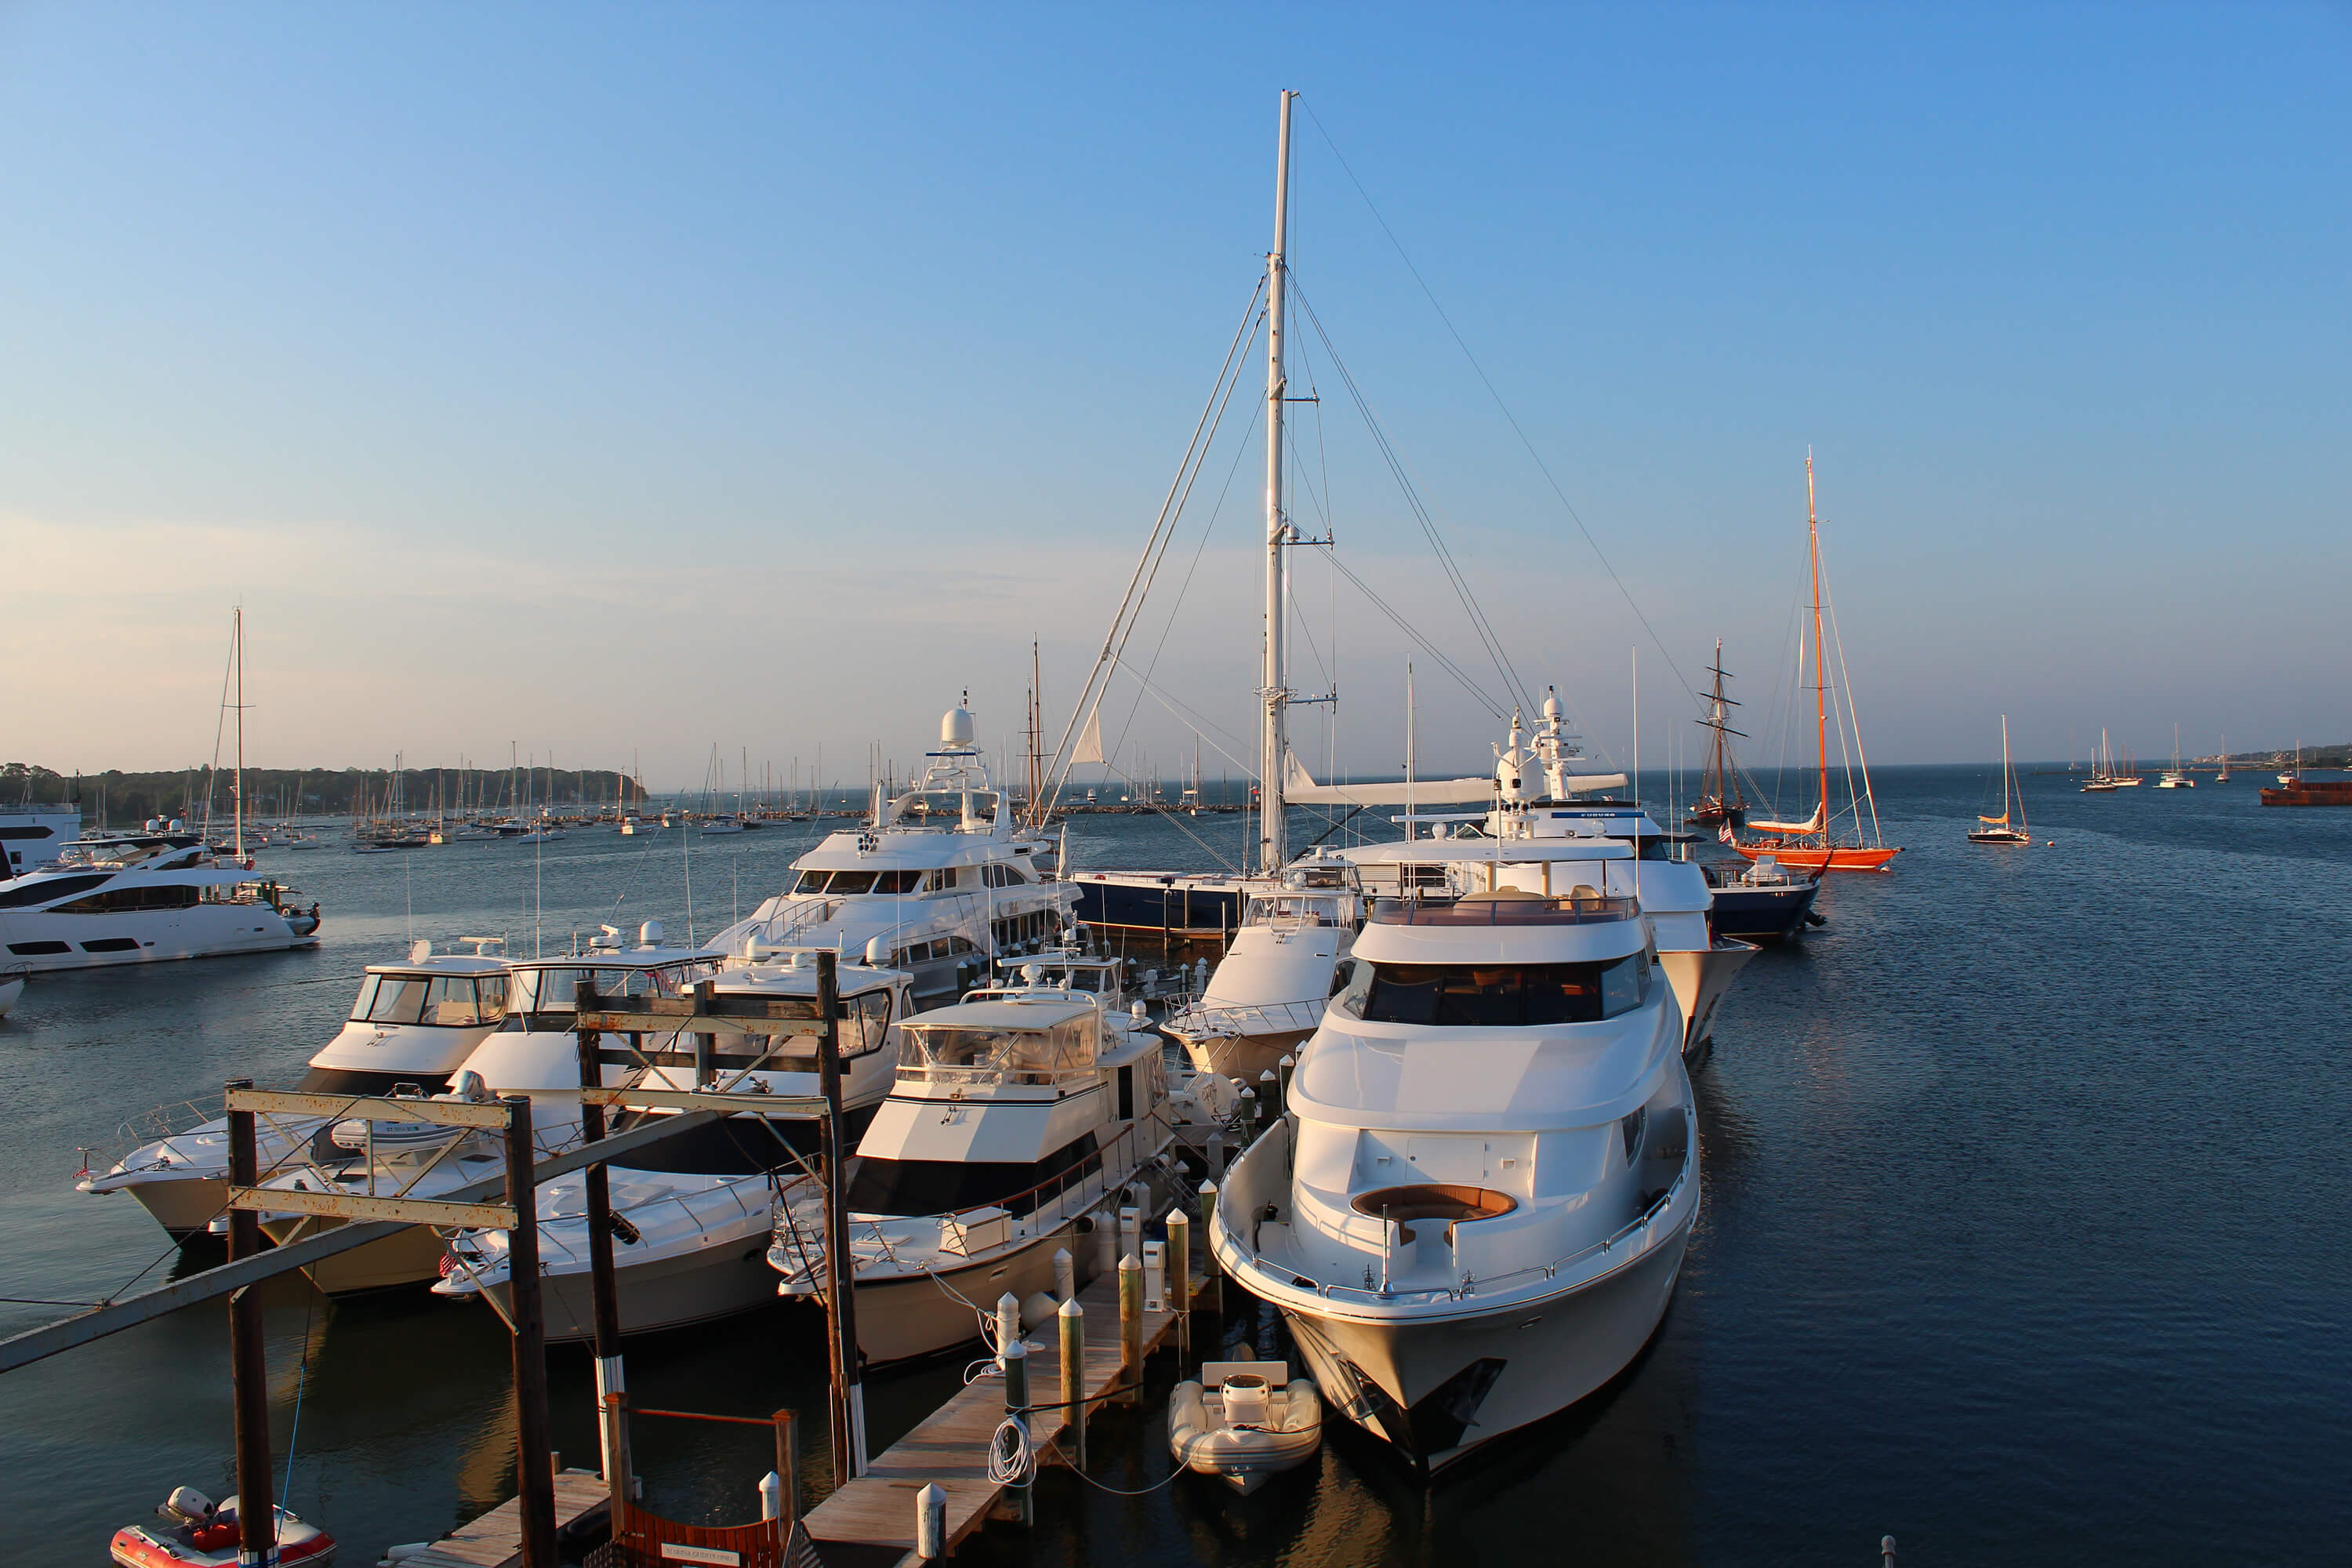 Vineyard Haven Marina in Vineyard Haven, MA